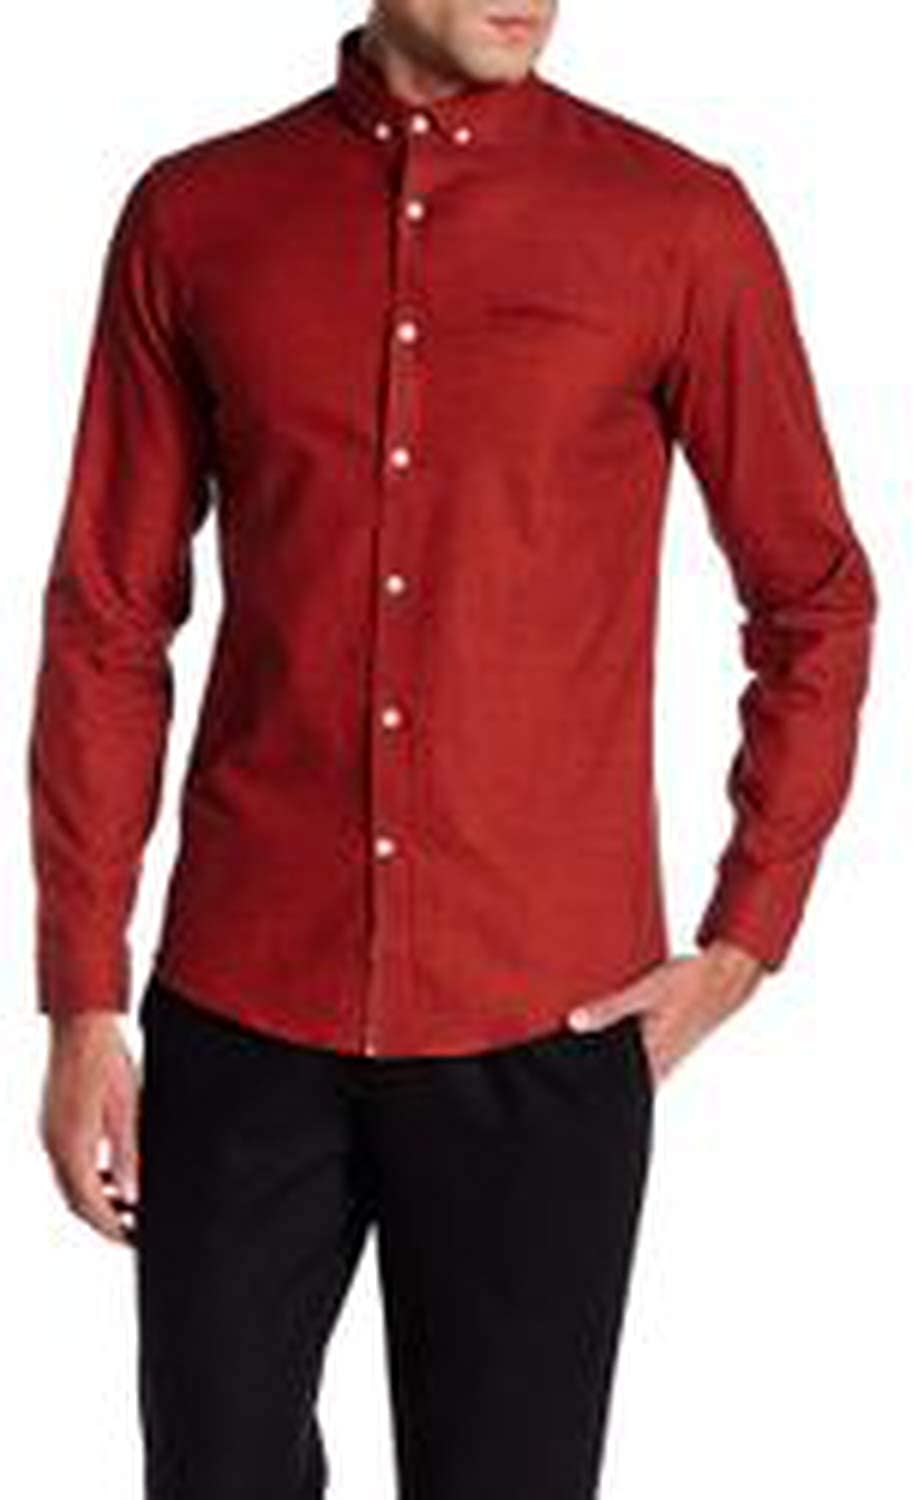 Oxford Shirt L 30-24556 Daily bargain sale S Ranking TOP3